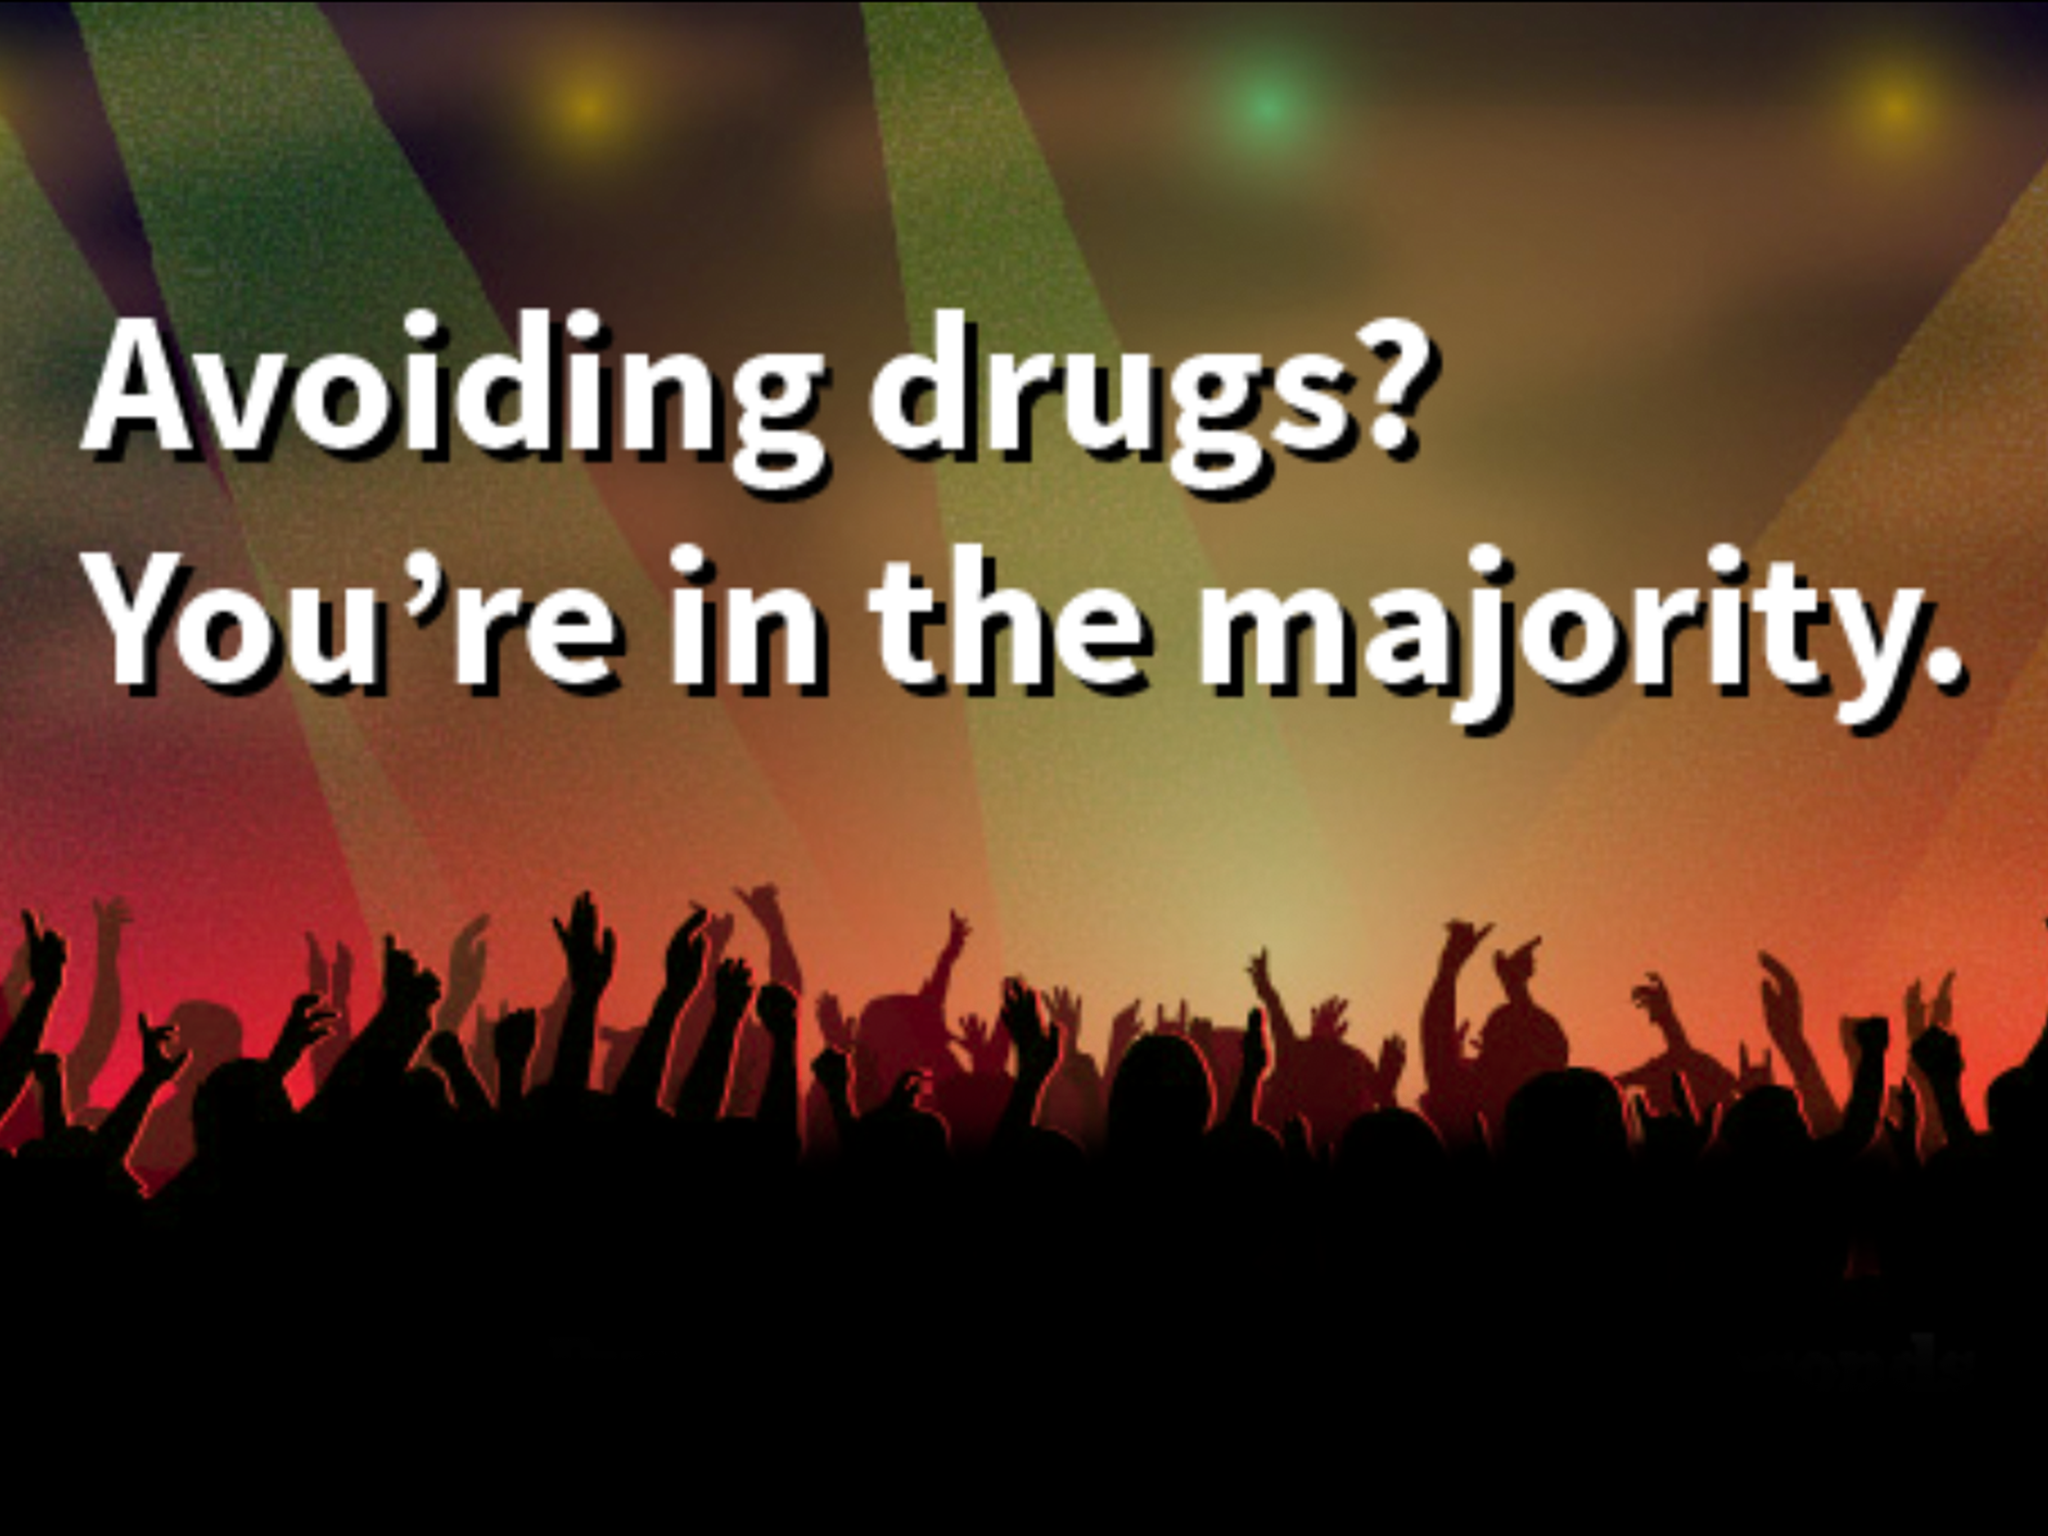 How many people use illegal drugs in Australia?